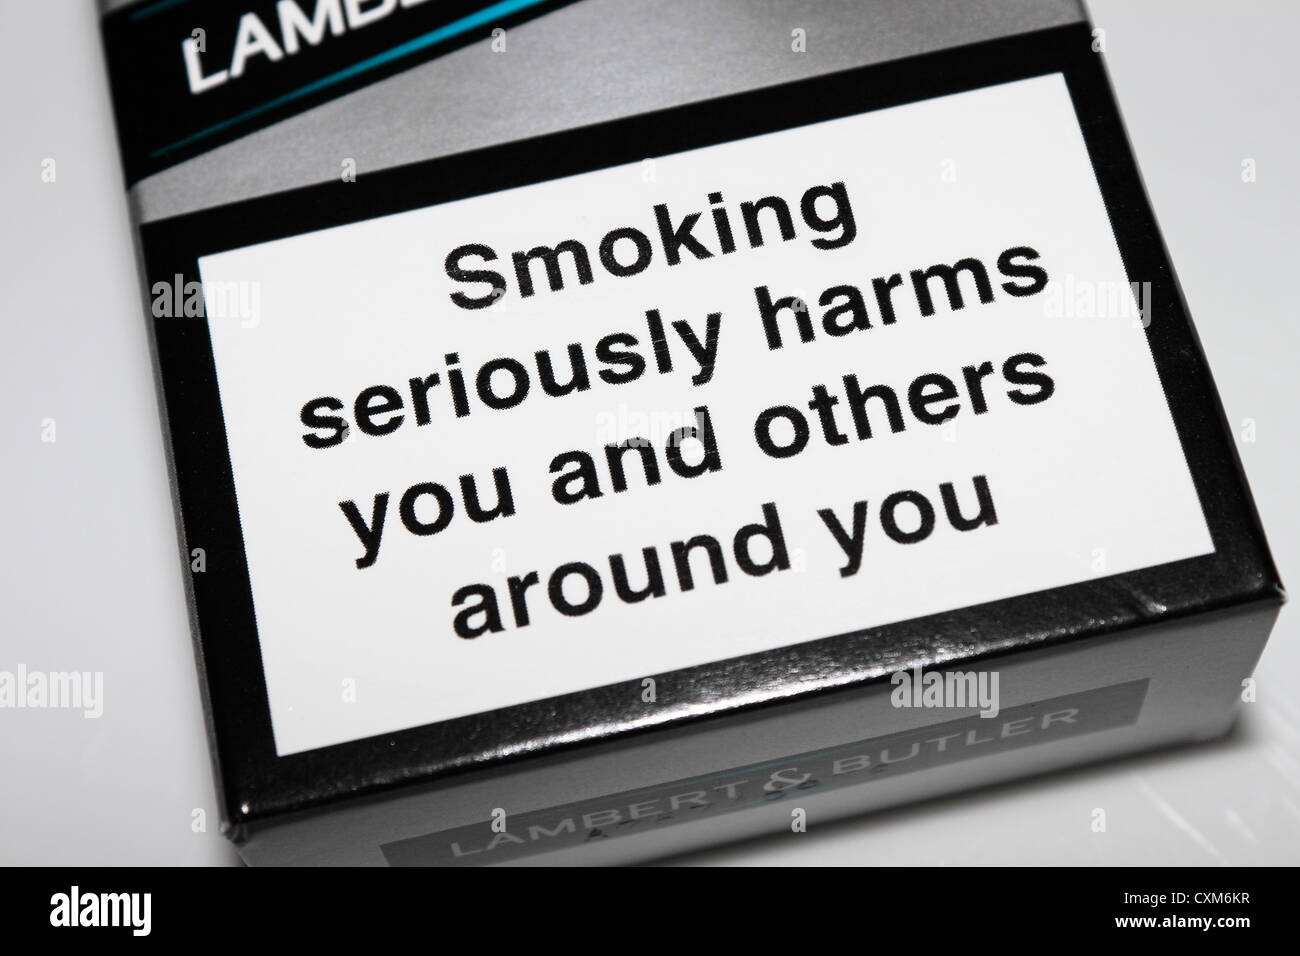 Cigarette packet health warning - Stock Image